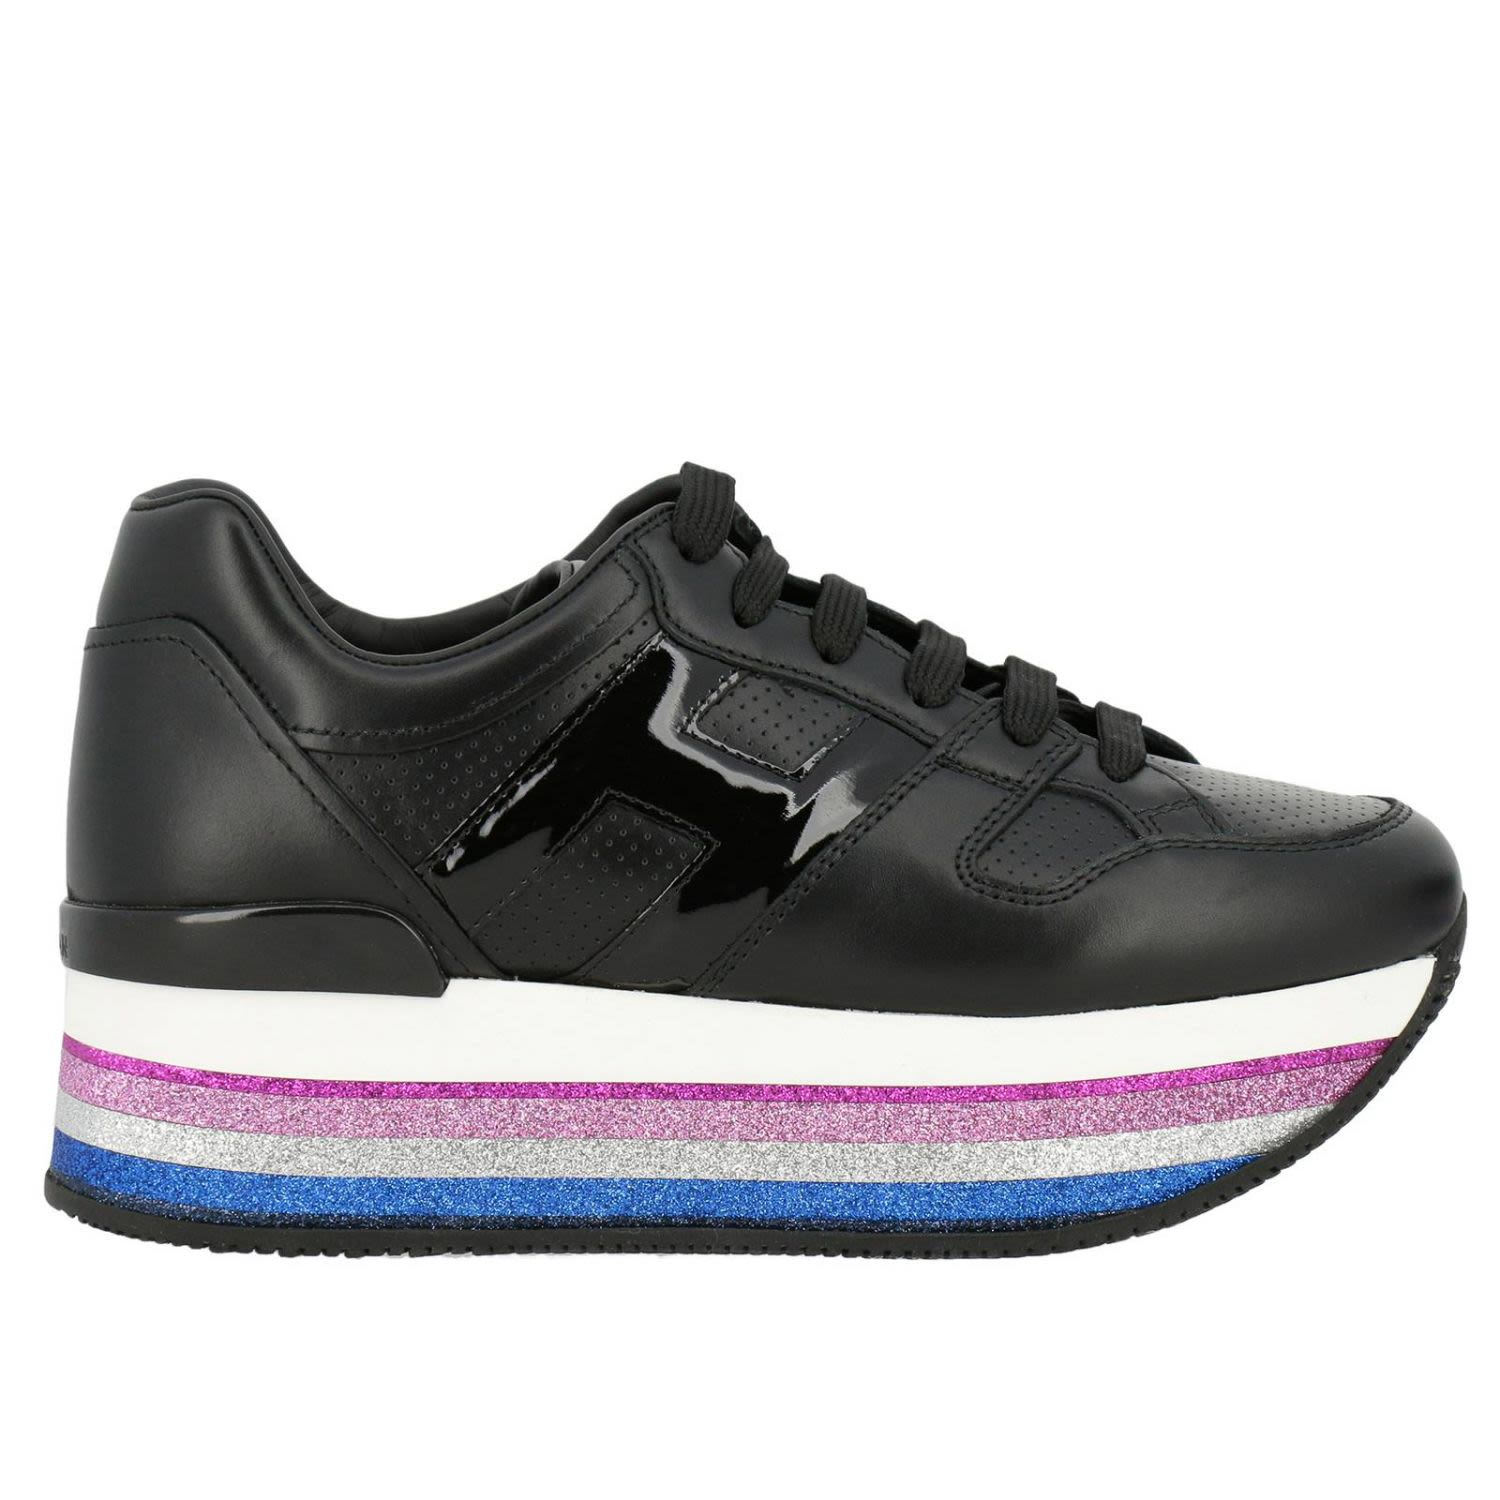 17bee177980 italist | Best price in the market for Hogan Hogan Sneakers Shoes ...